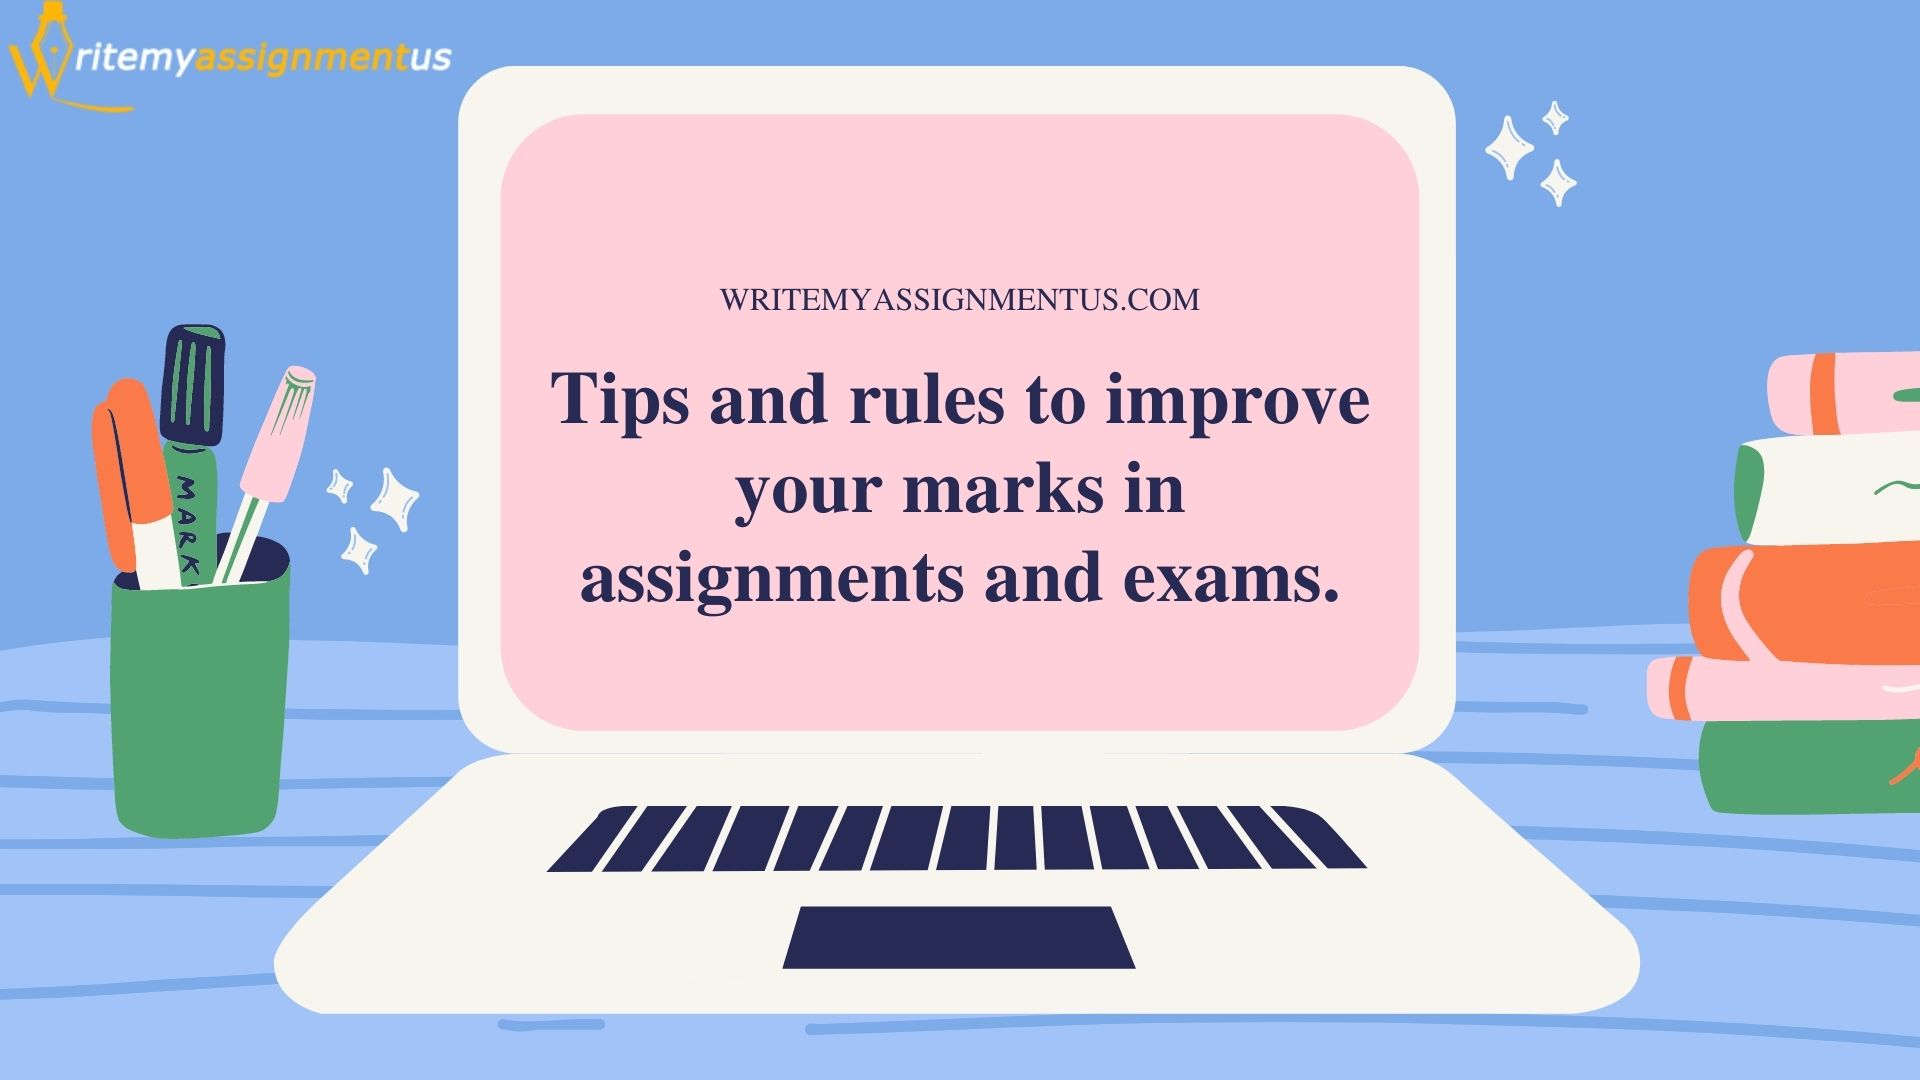 Tips to improve marks